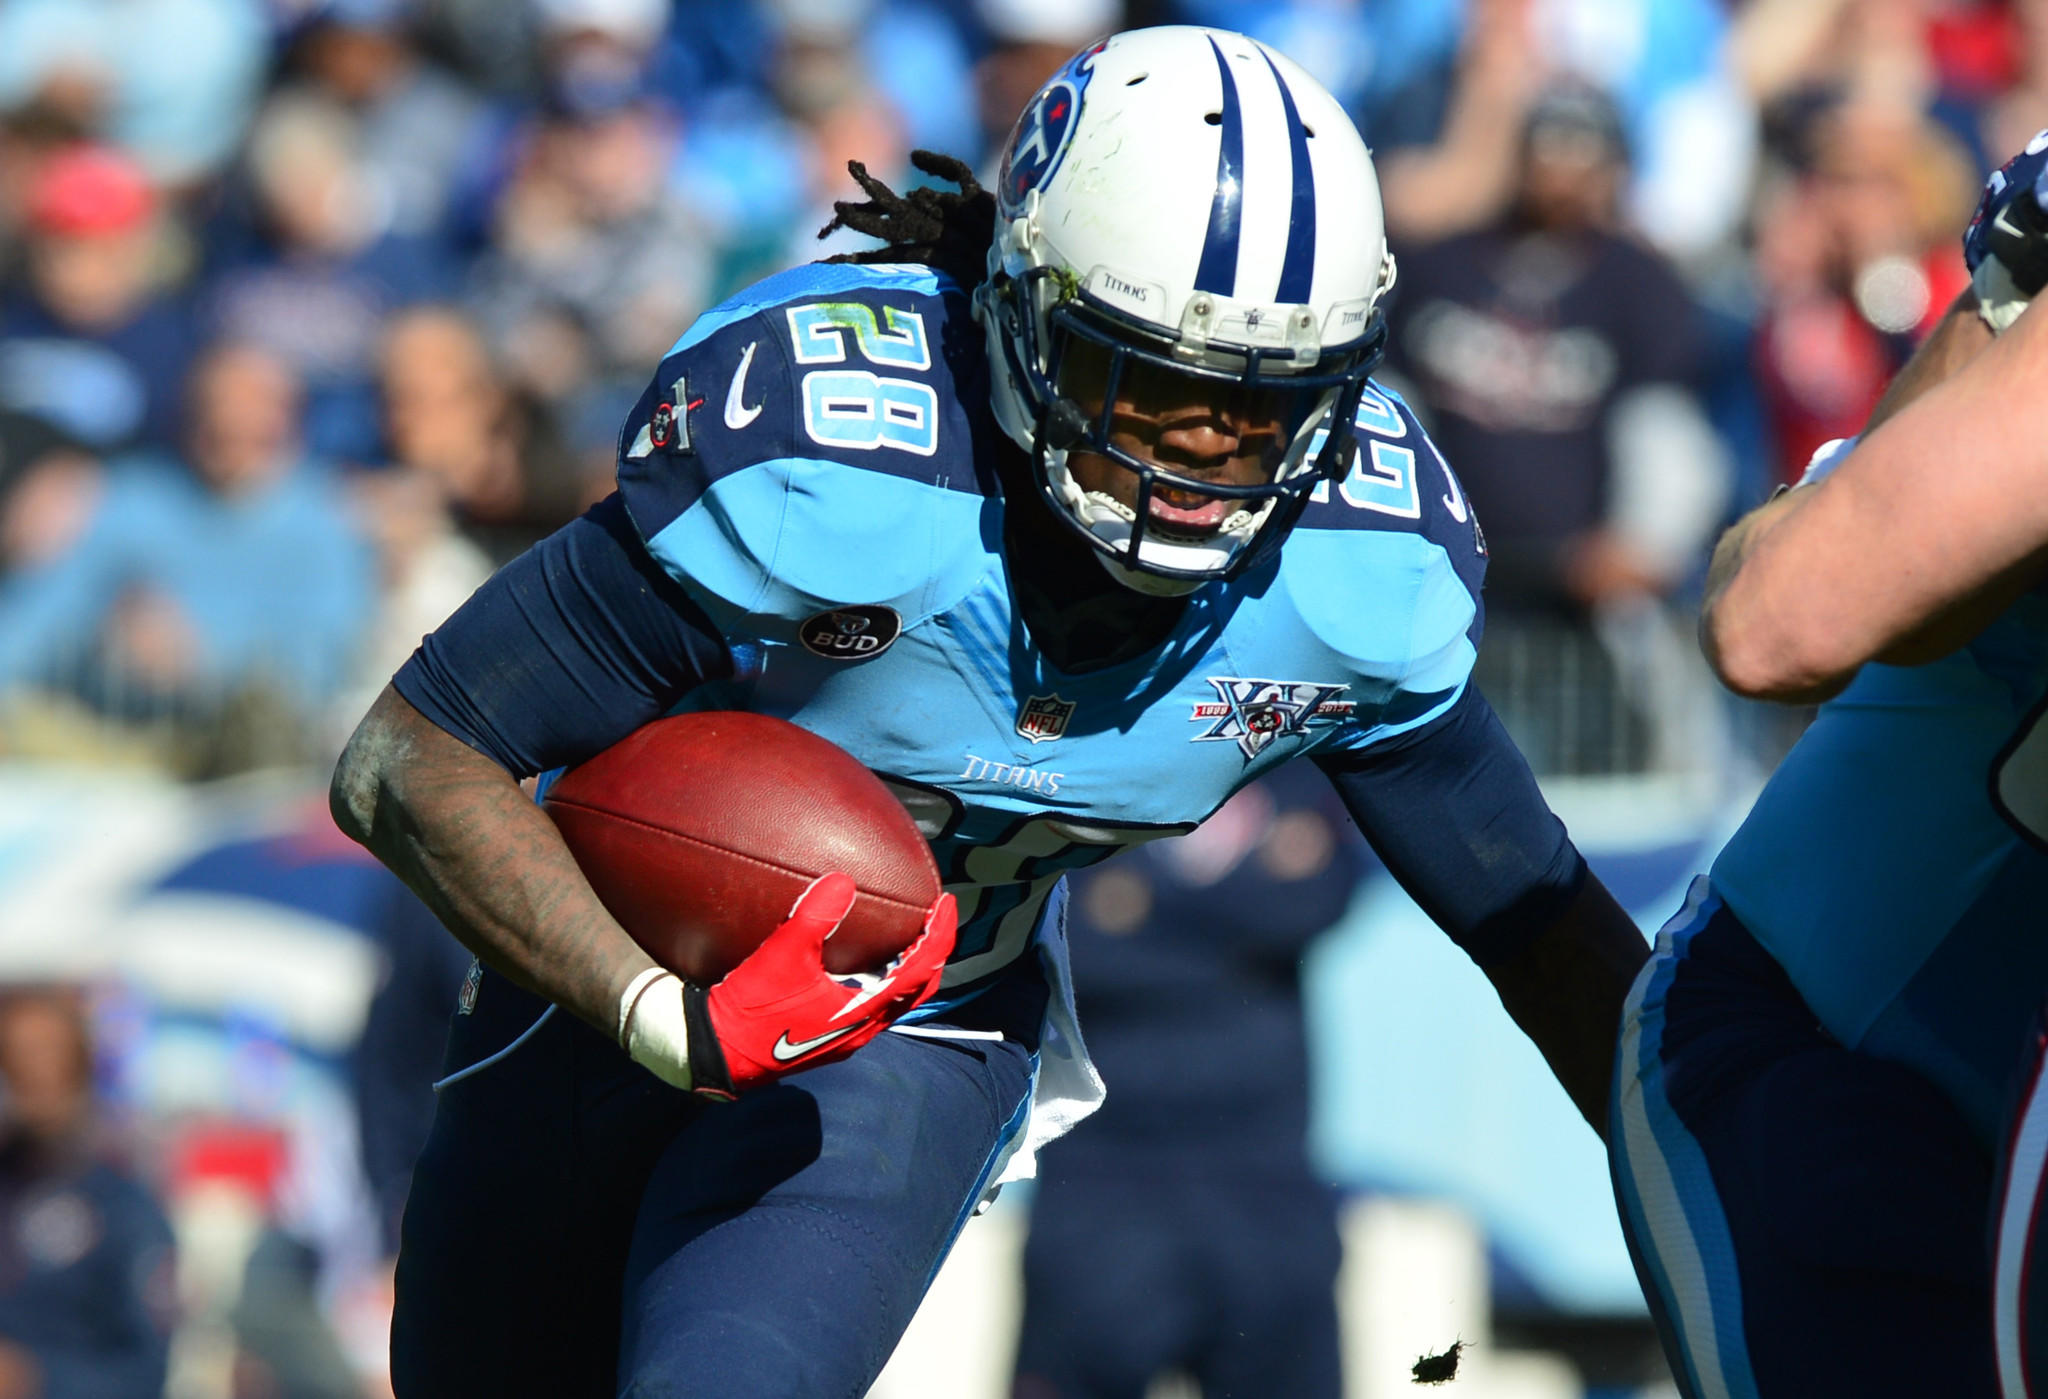 Tennessee Titans running back Chris Johnson (28) carries the ball against the Houston Texans during the first half at LP Field. Mandatory Credit: Don McPeak-USA TODAY Sports ORG XMIT: USATSI-133040